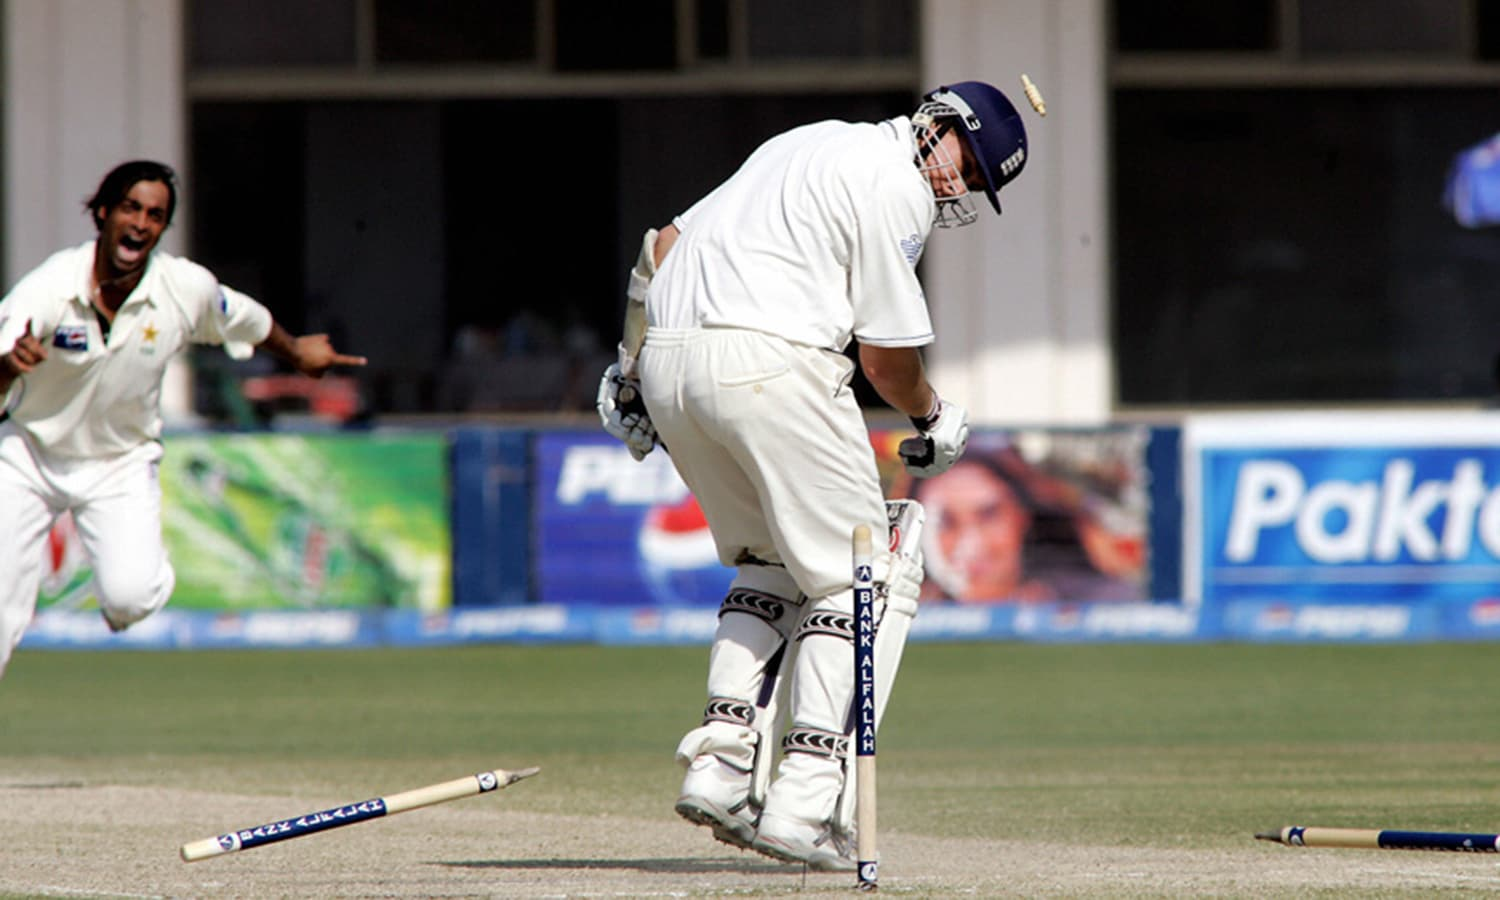 2005: Pakistan fast bowler, Shoaib Akhtar, uproots the stumps in the 2005 Test against England at the Multan Cricket Stadium. (Pic: AFP)